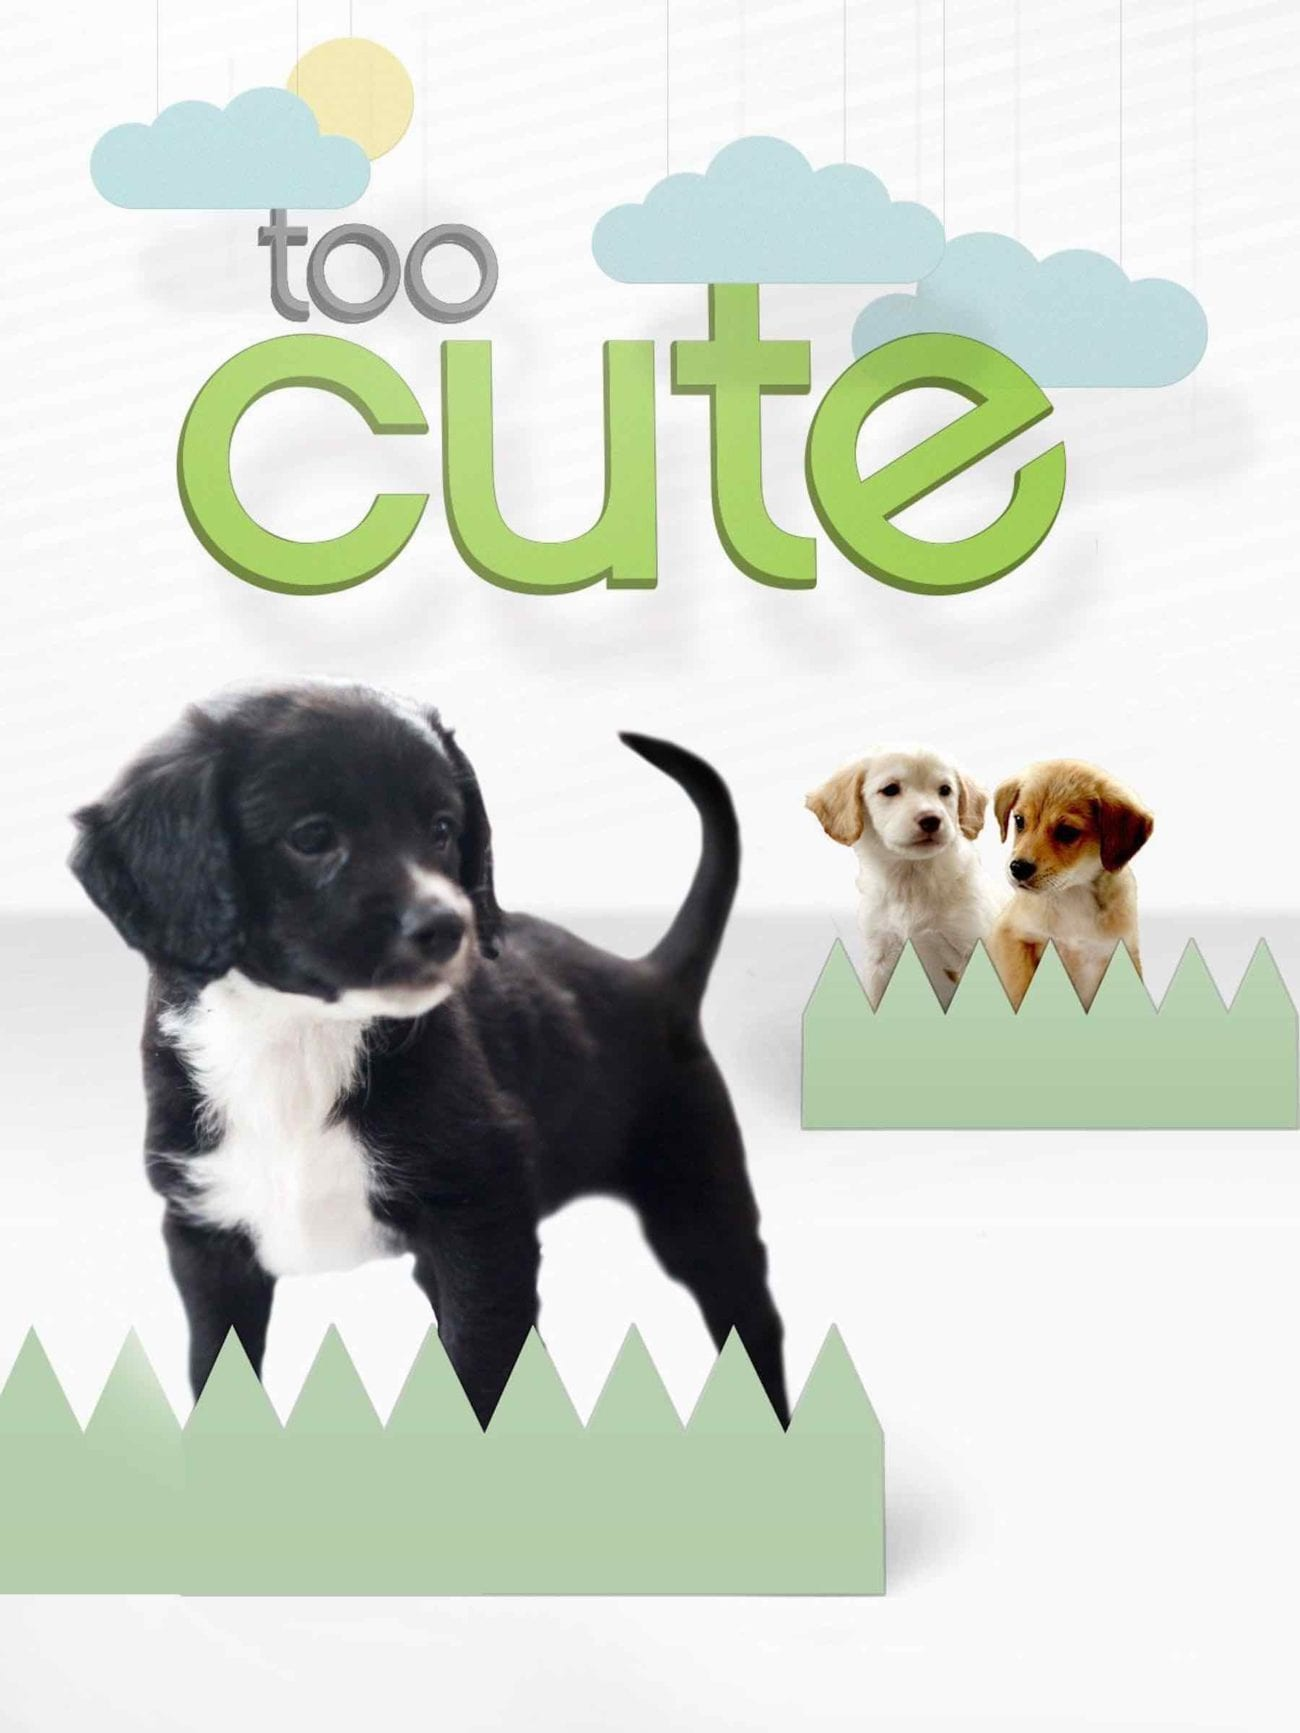 The world is slowly descending into chaos. That's where 'Too Cute!' and their puppies and kittens comes in. Here's why 'Too Cute!' is the show we all need.